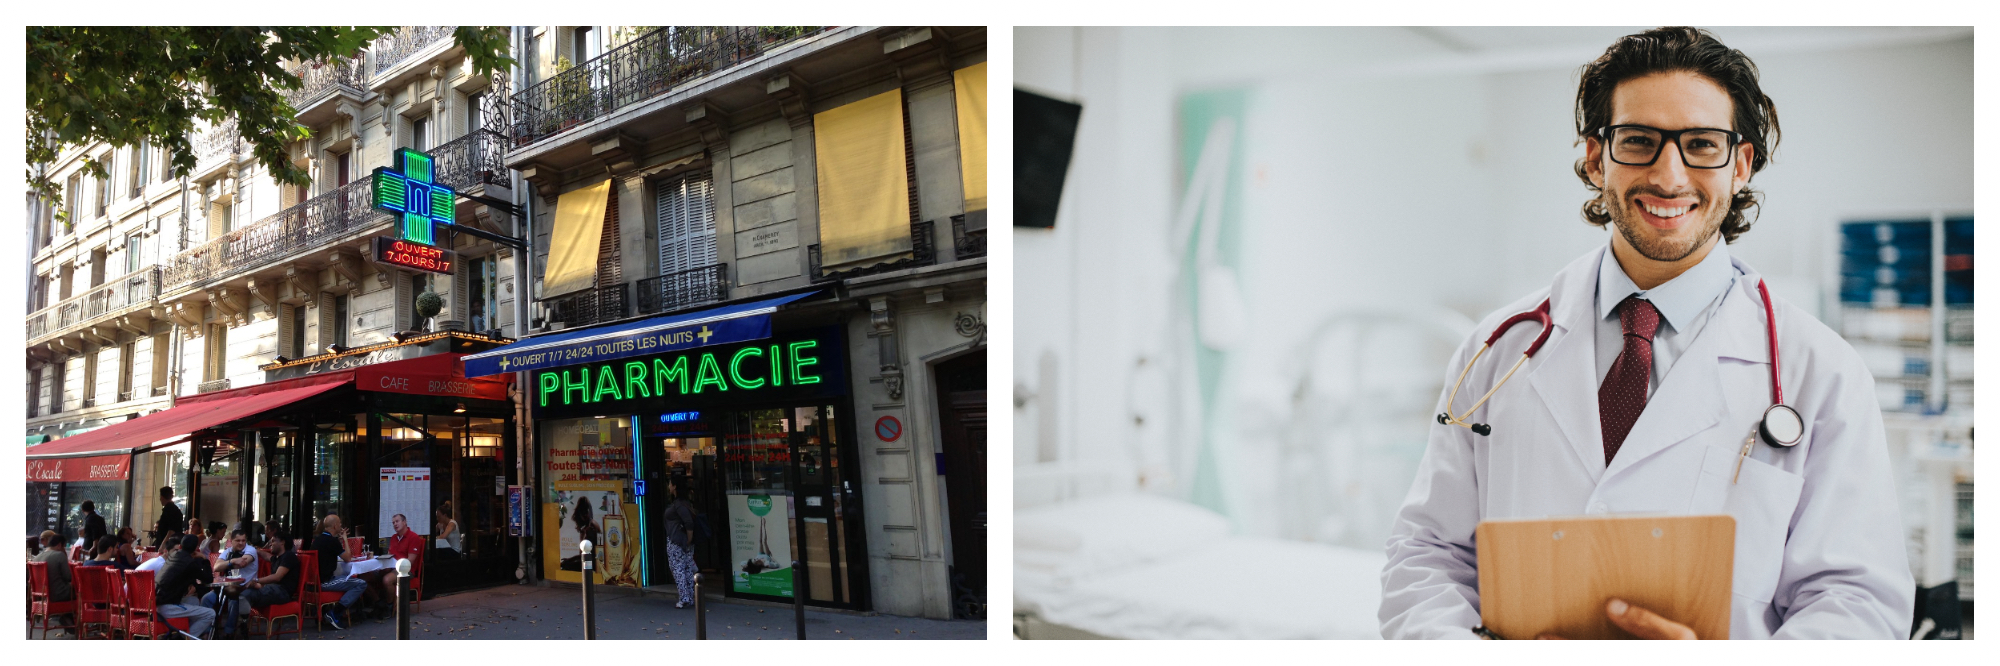 On the left: On a sunny day, a glowing green cross suspended from the first floor of a Paris apartment building signals to passerby that there is a pharmacy next to the café below. On the right: a friendly male doctor wearing thick-rimmed glasses and a stethoscope holds a clipboard, ready to welcome his patient.